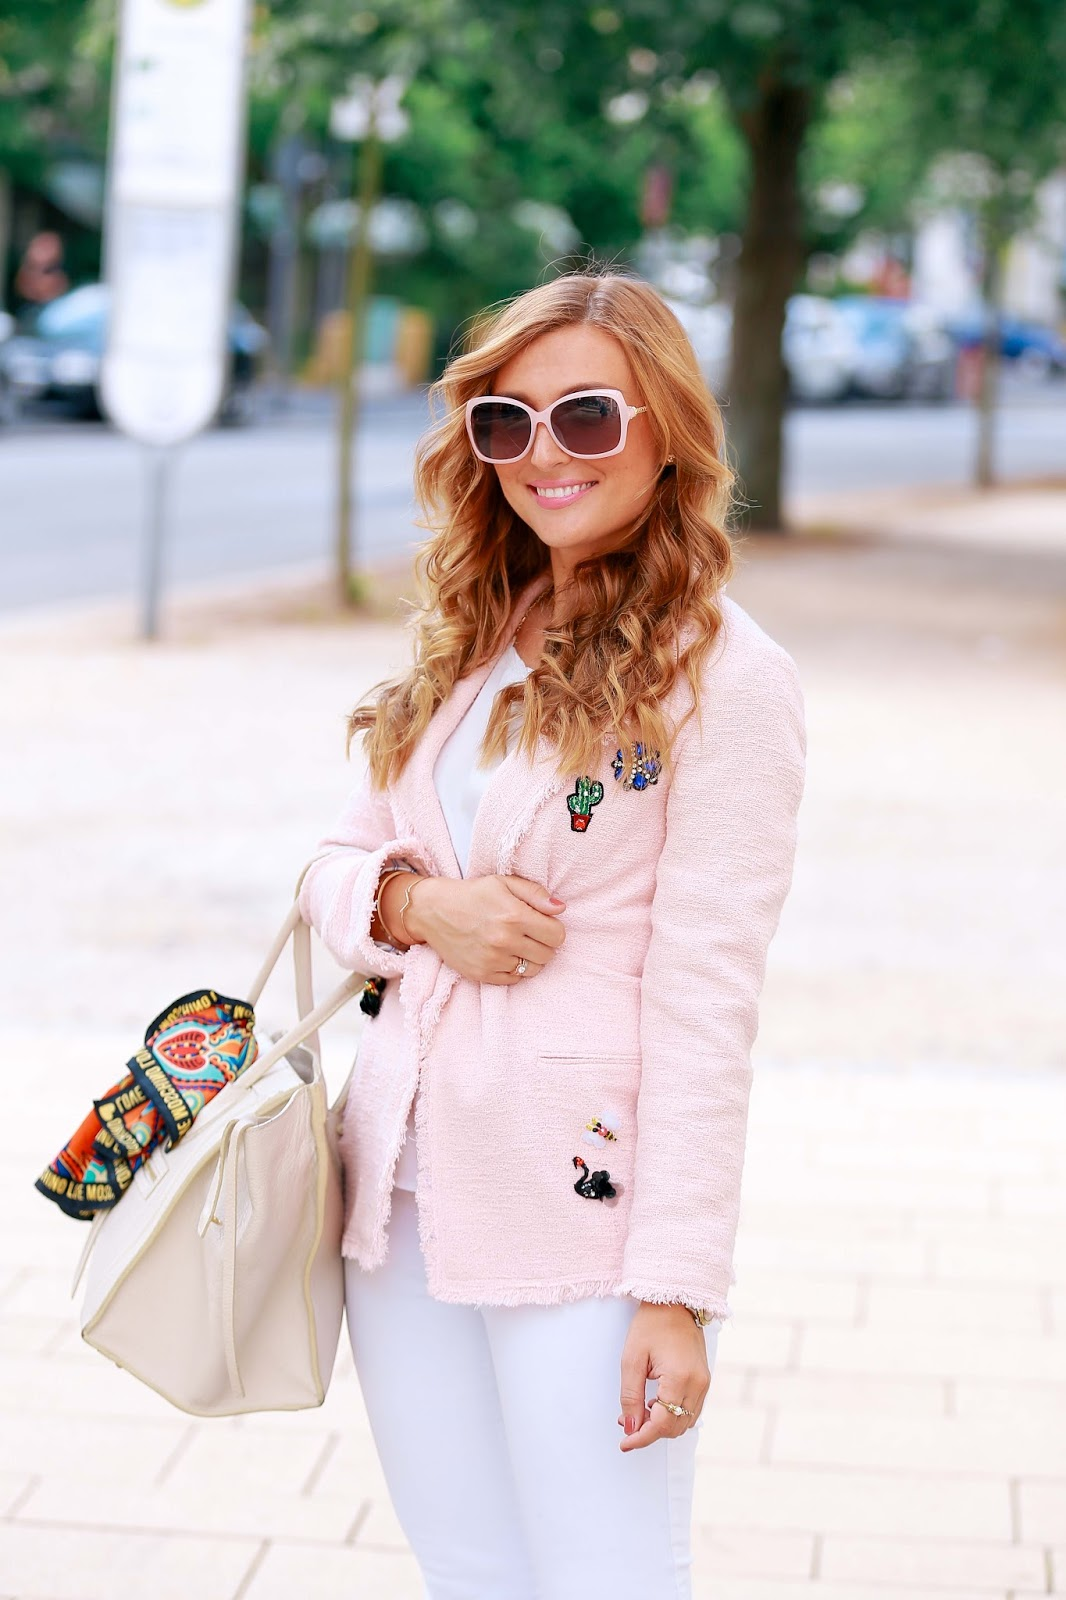 Celine-luggage-blogger-lookalike-fashionstylebyjohanna-rosa-blazer-business-casual-style